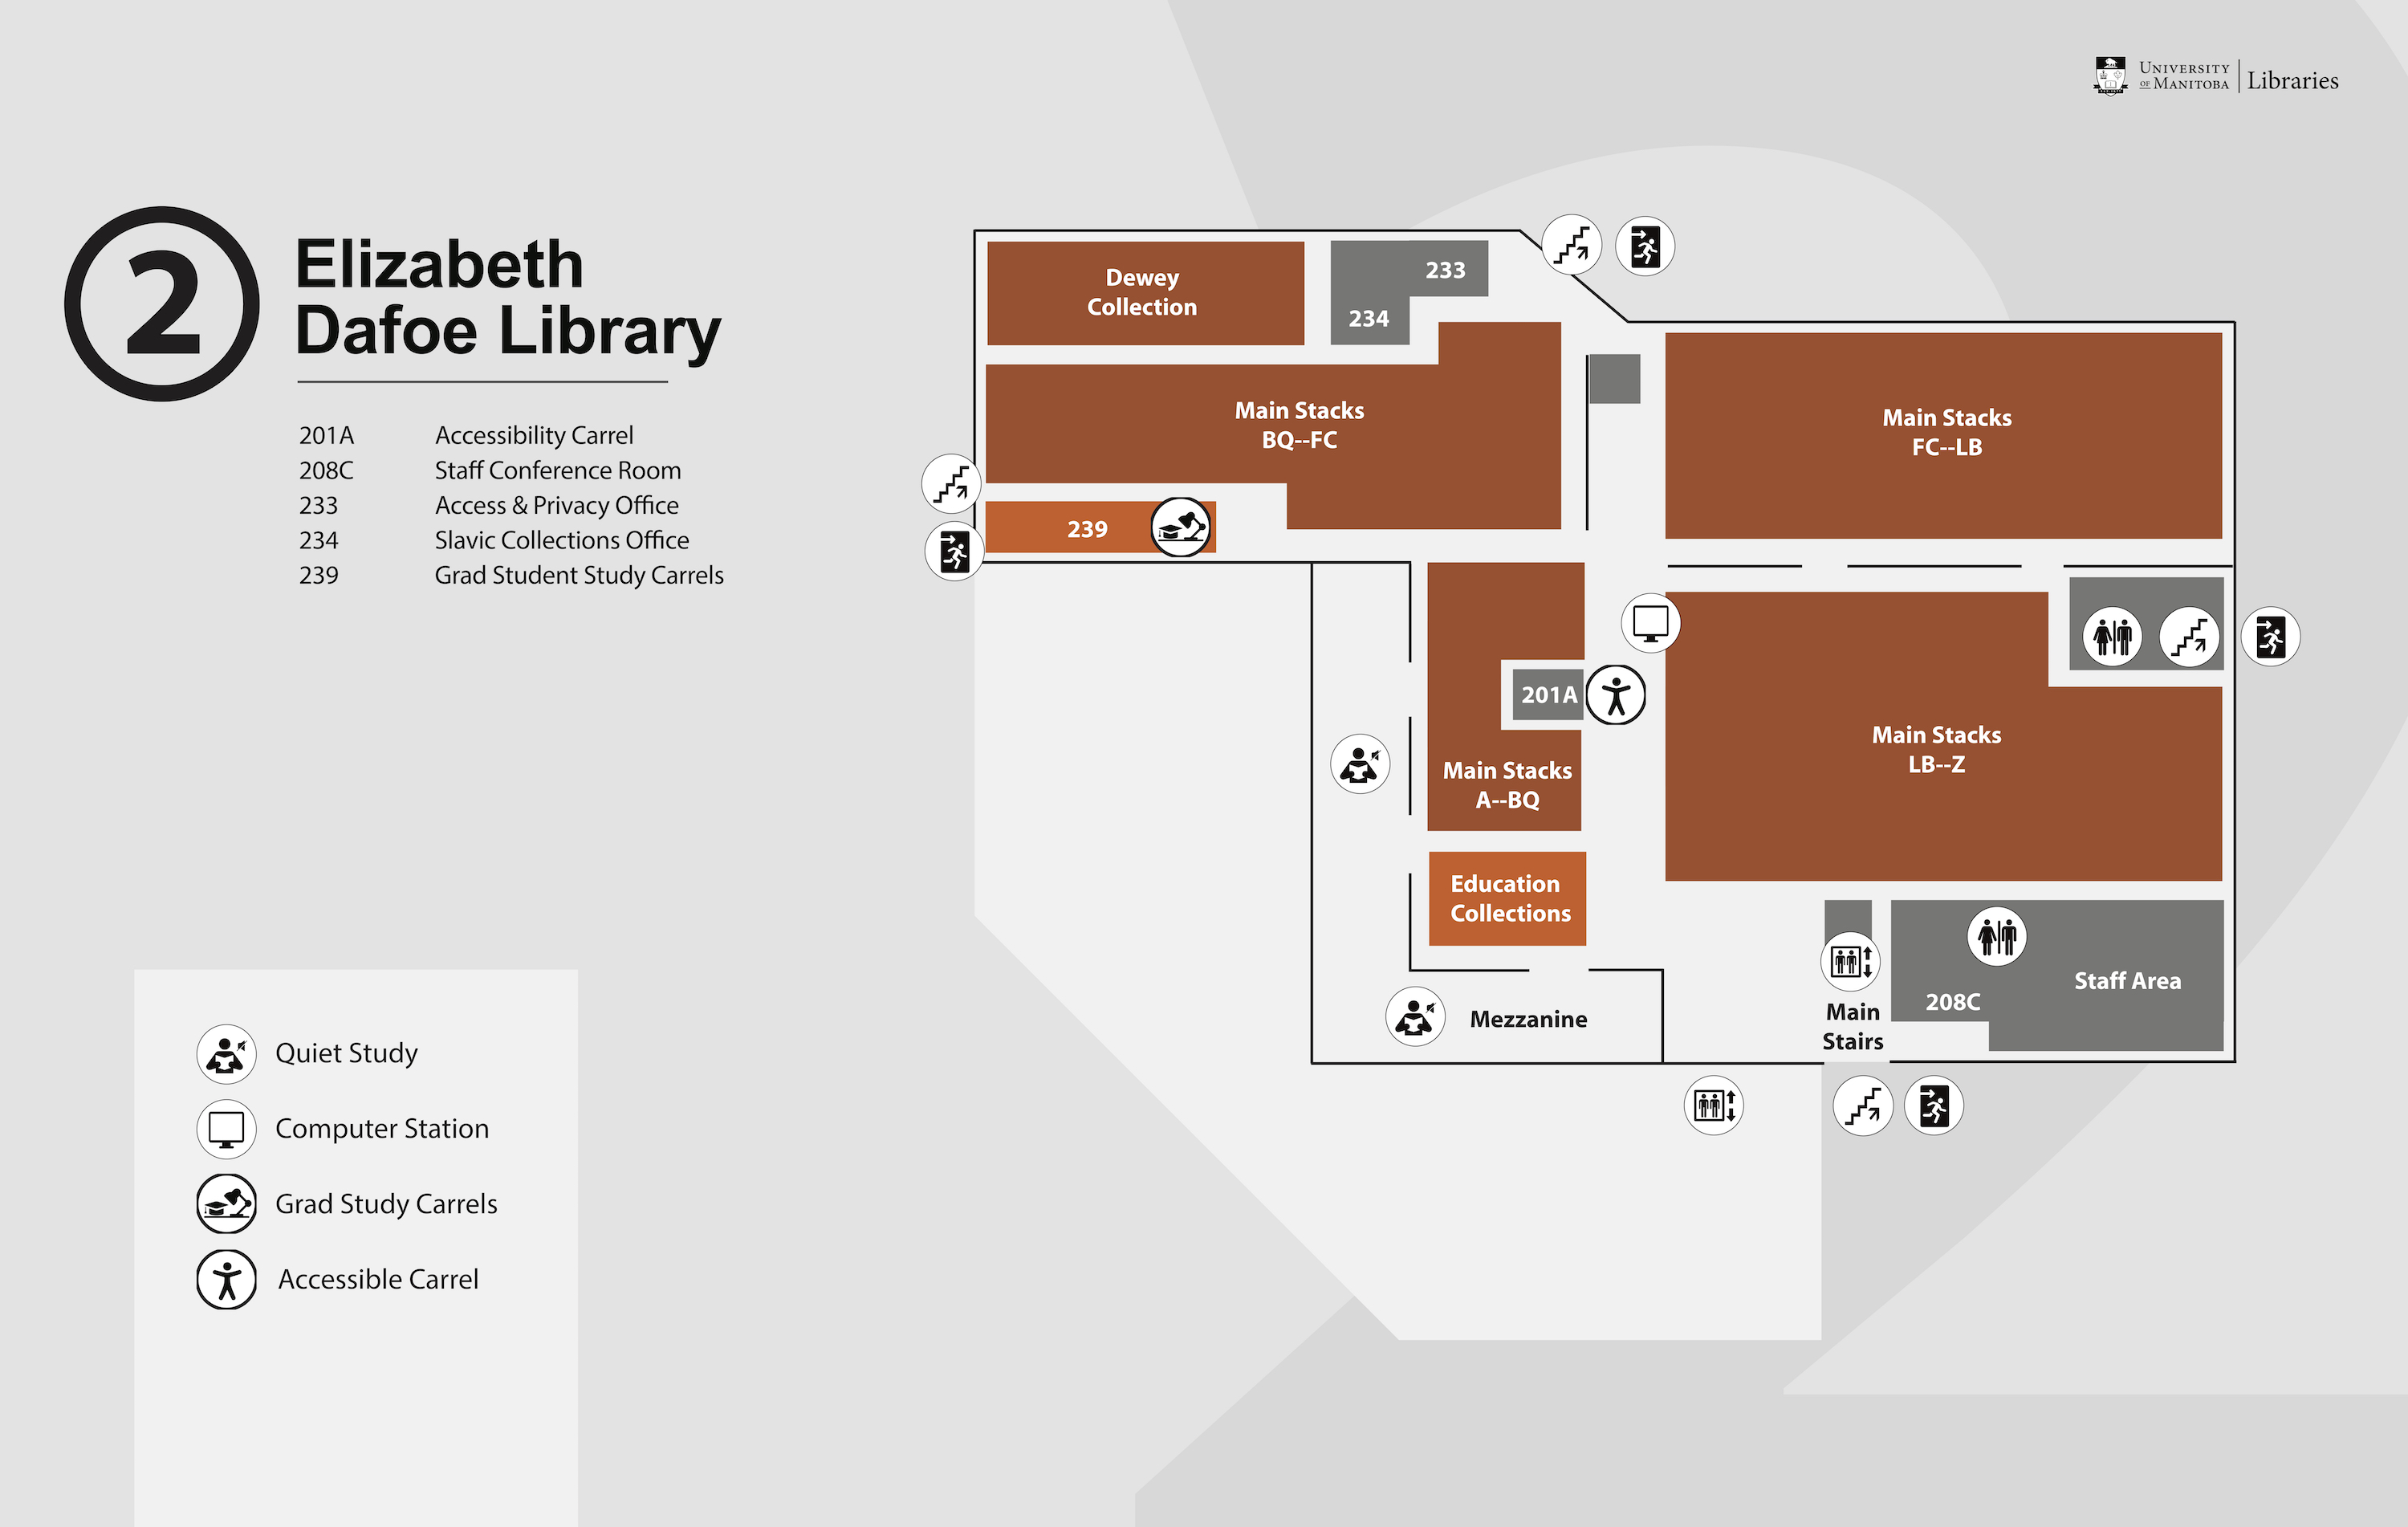 Elizabeth Dafoe Library Floor Plan - Second Floor